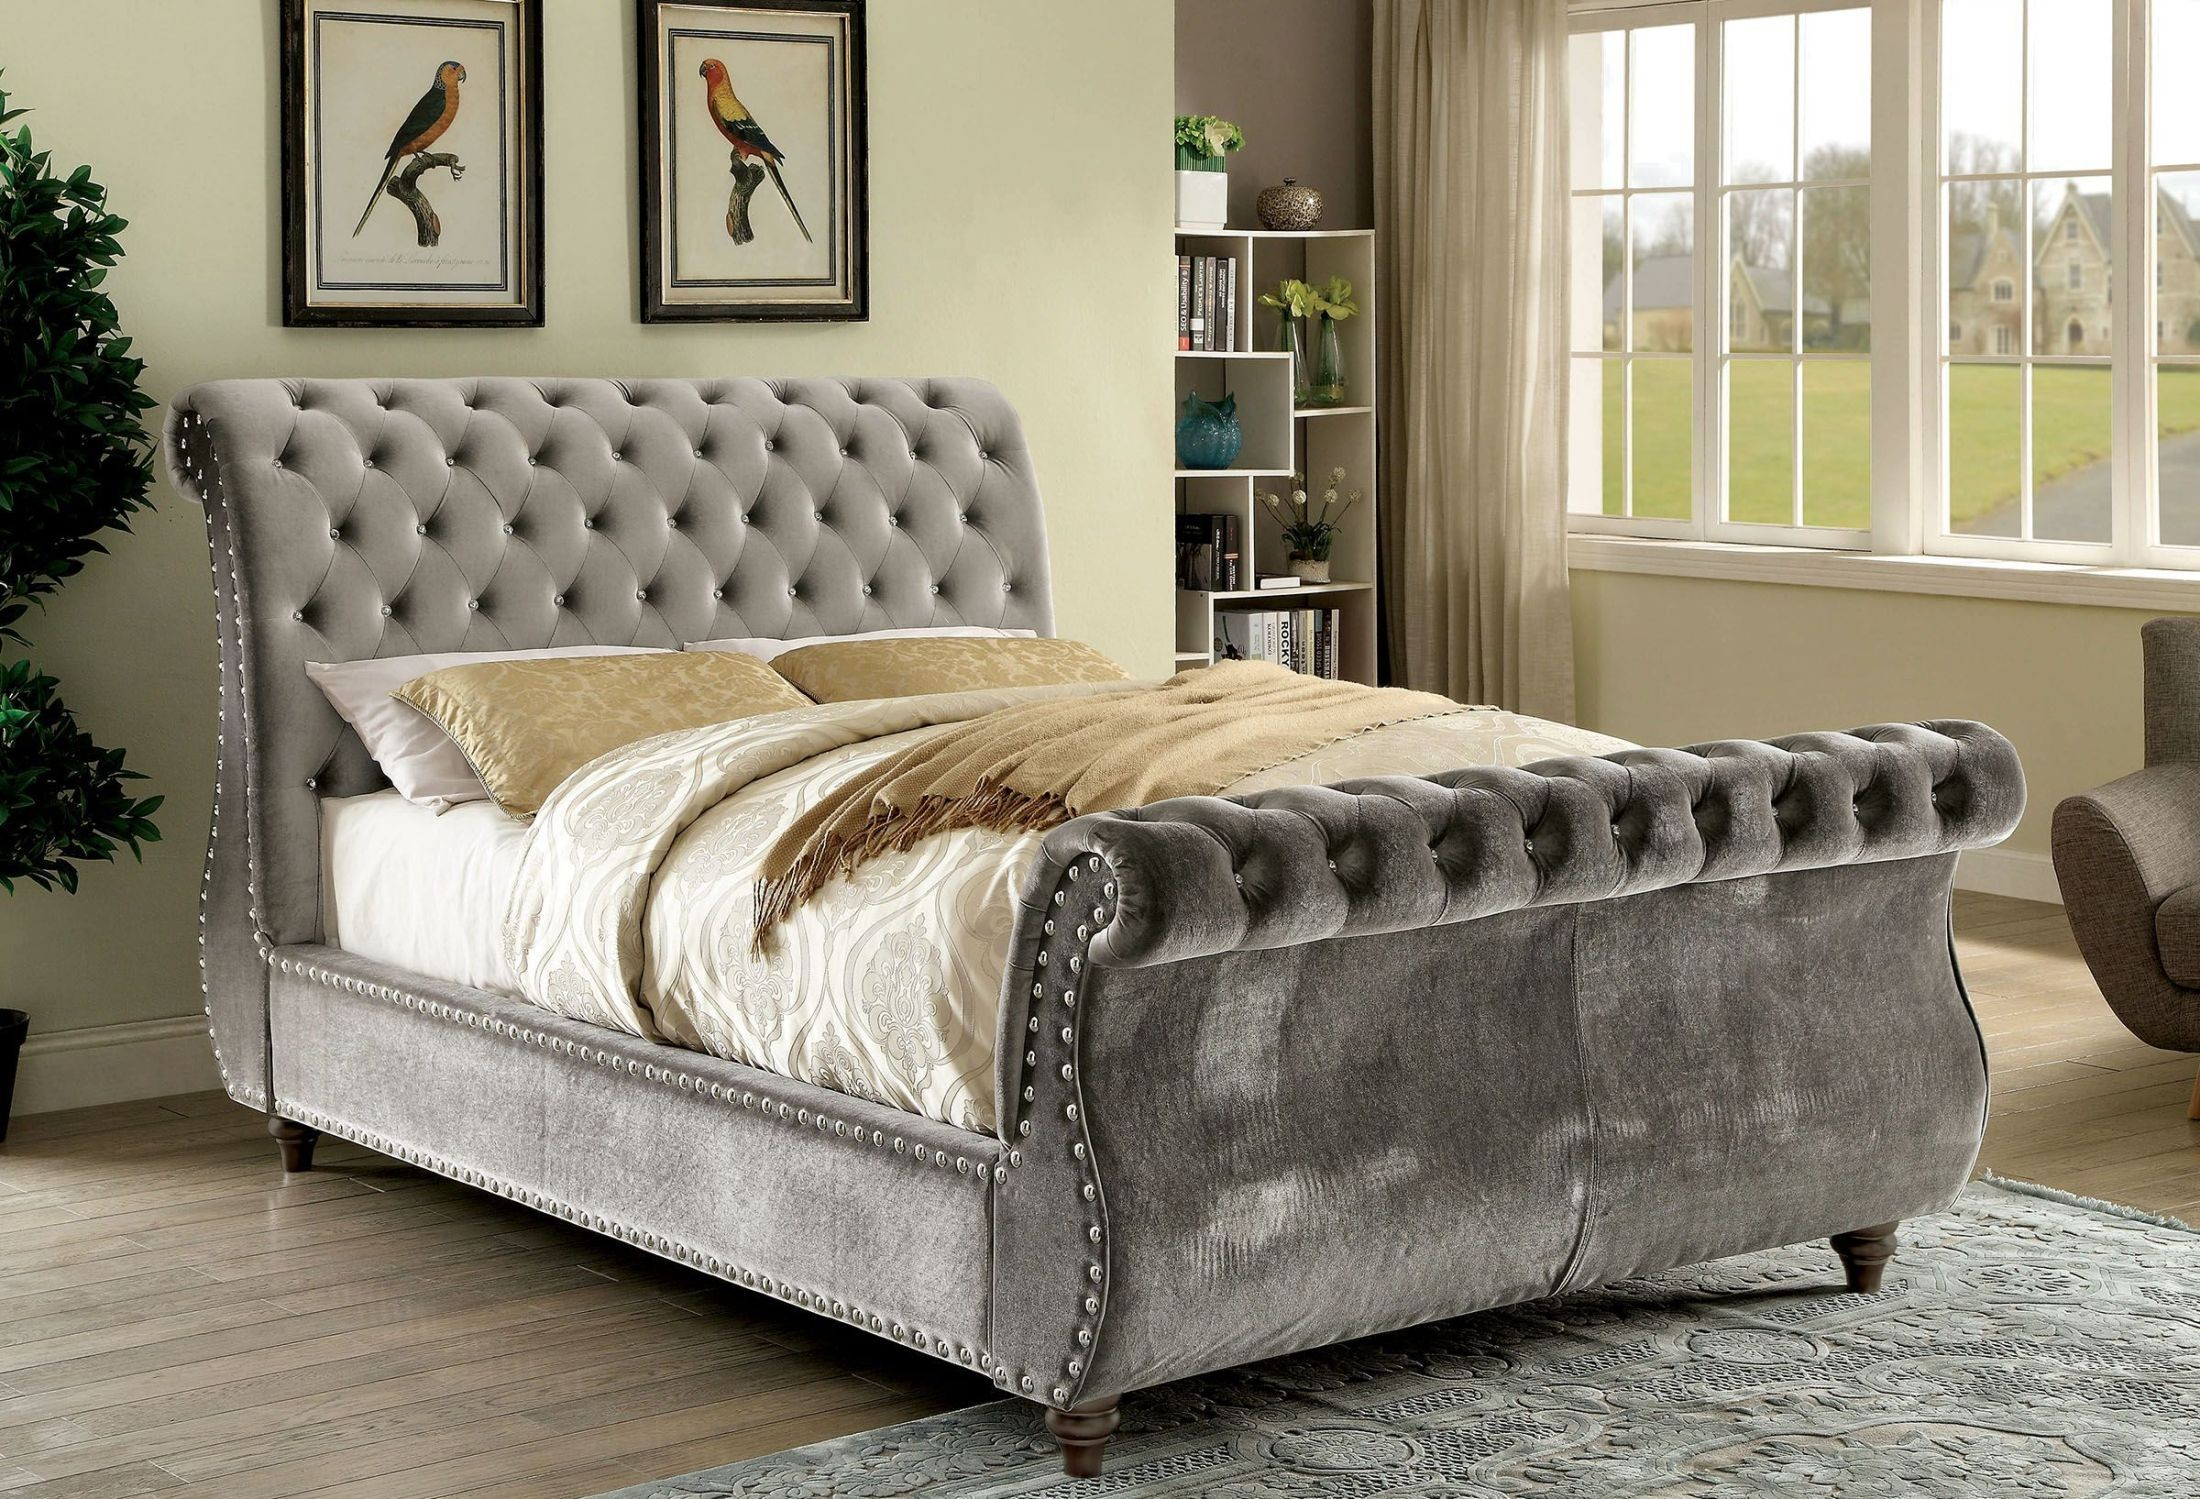 furniture of america noella gray king upholstered sleigh bed noella collection 4 reviews. Black Bedroom Furniture Sets. Home Design Ideas